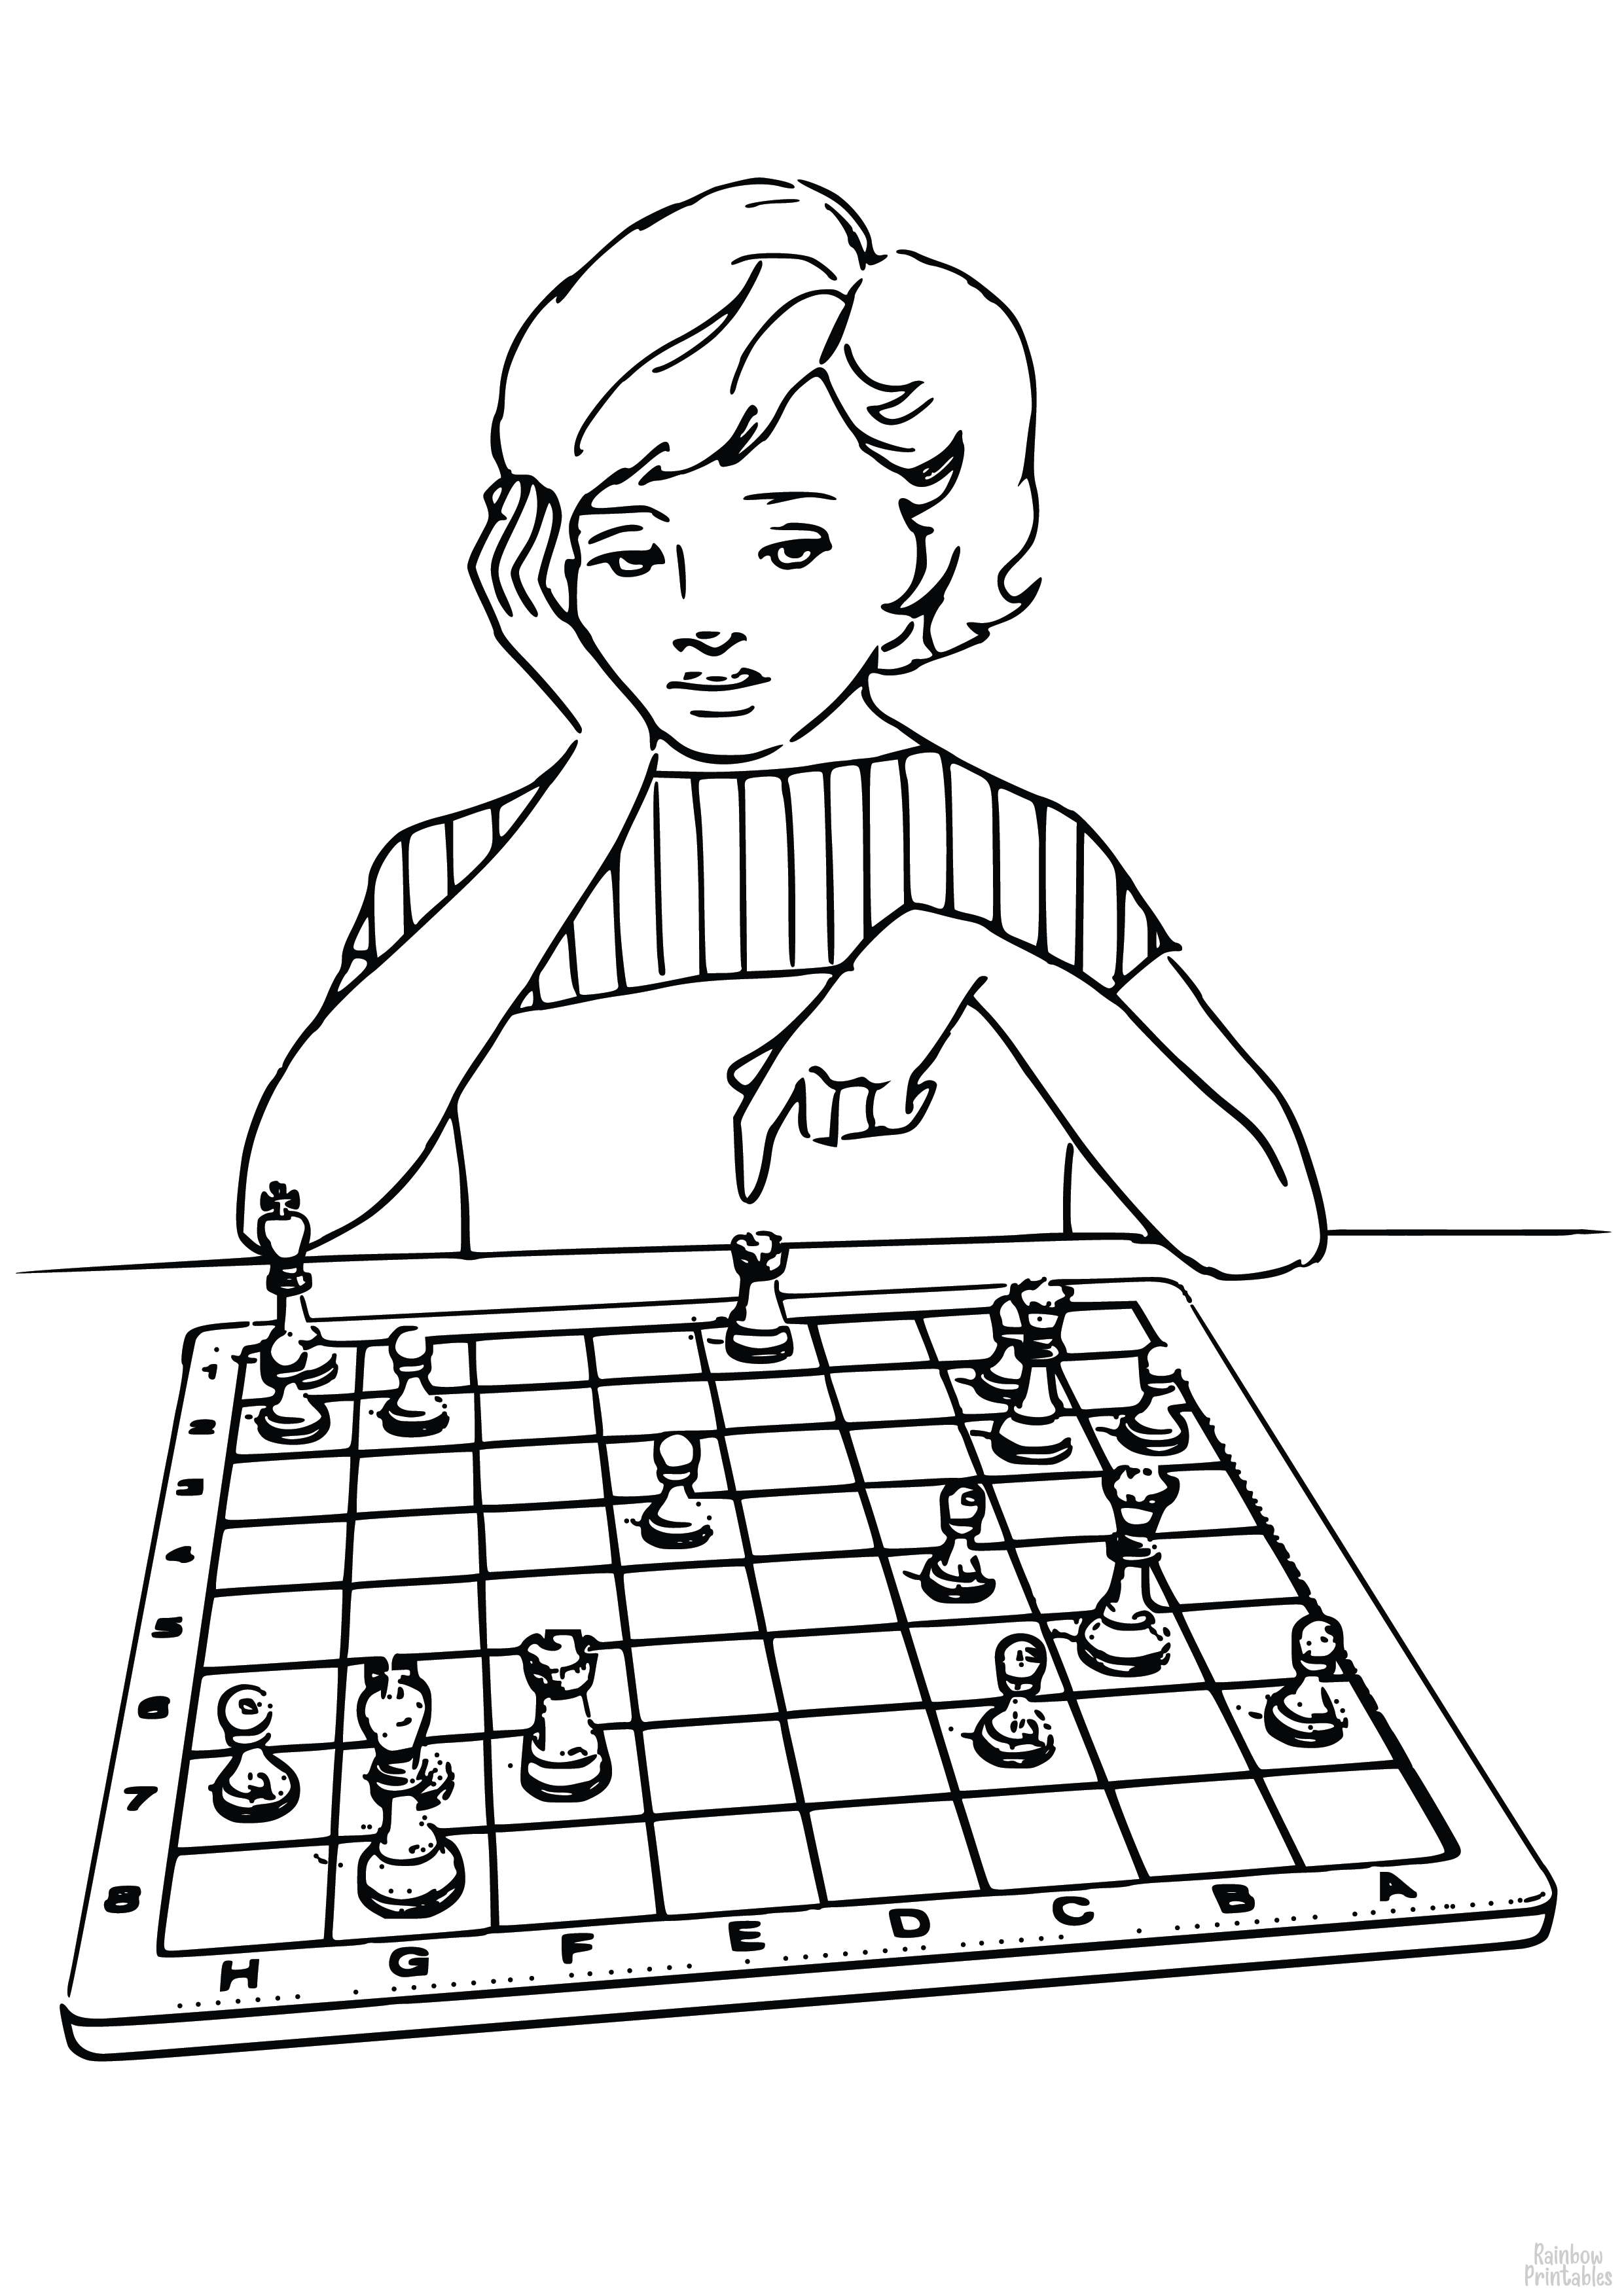 Woman Playing Chess Bored Cartoon Lady Clipart Coloring Pages for Kids Art Activities Line Art